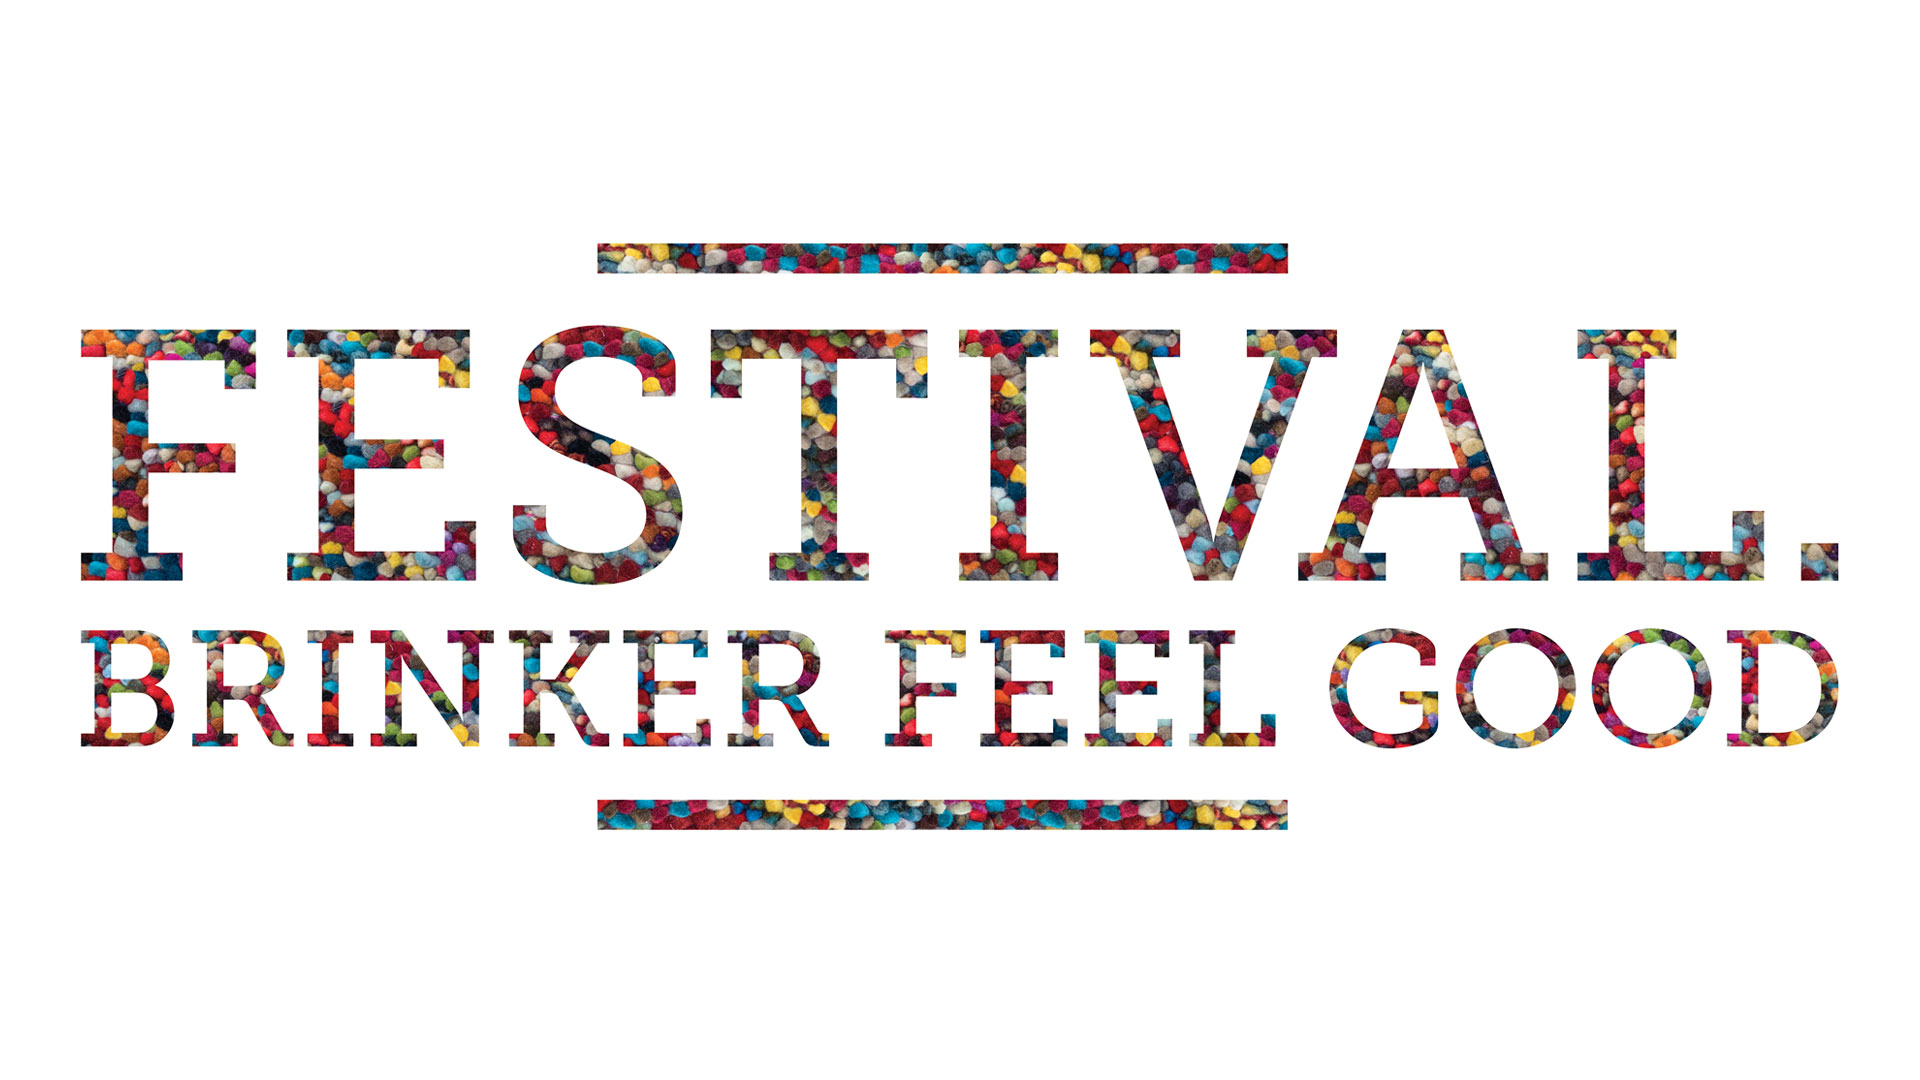 Festival Collectie van Brinker Feelgood Carpets